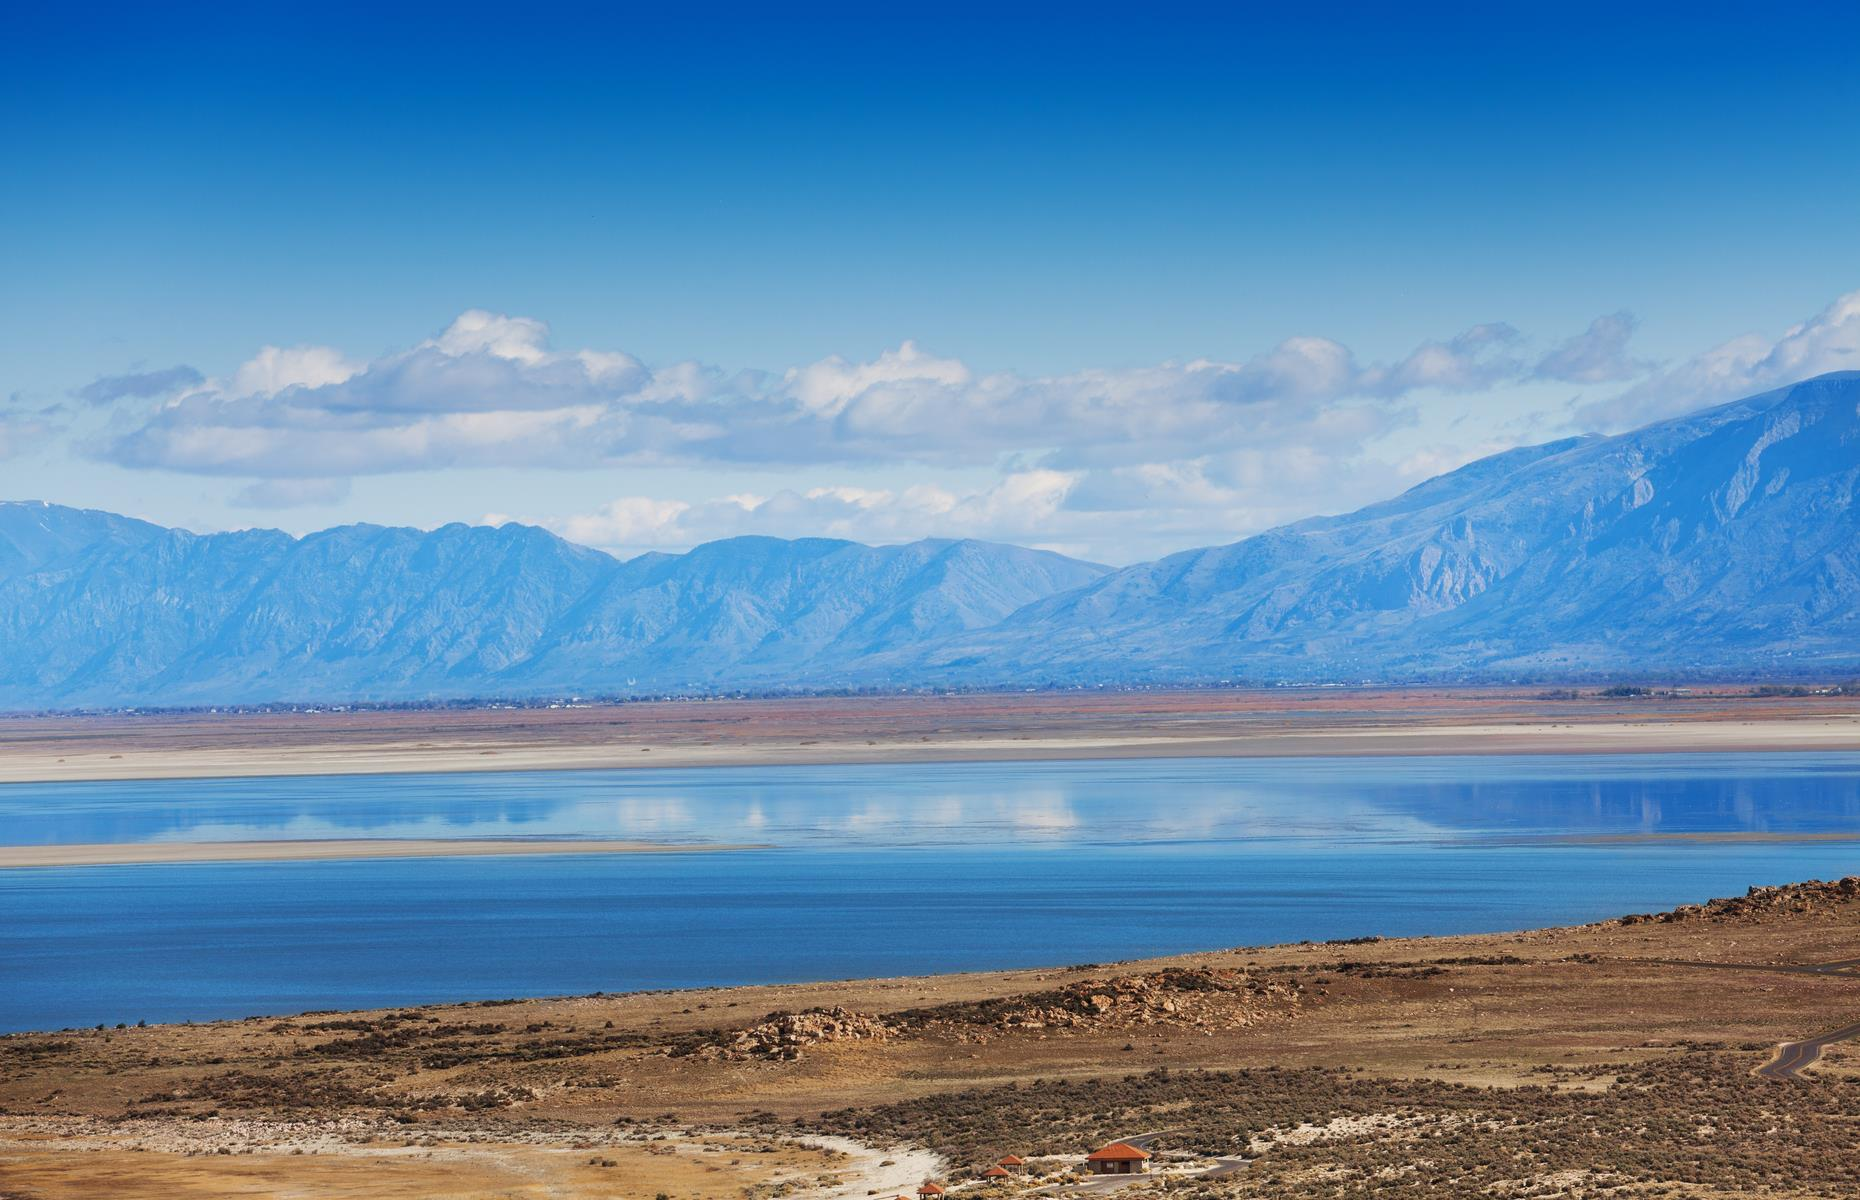 Slide 88 of 101: Wonderful views of the Great Salt Lake (pictured) reveal themselves along the road out west from Salt Lake City. The path from Utah's state capital to the little touristed city of Wendover involves around 120 miles (193km) on I-80 and about one hour 45 minutes on the road. Most scenic of all is an early stretch of the route that hugs the salt lake – there are designated viewing areas along the roadway here.